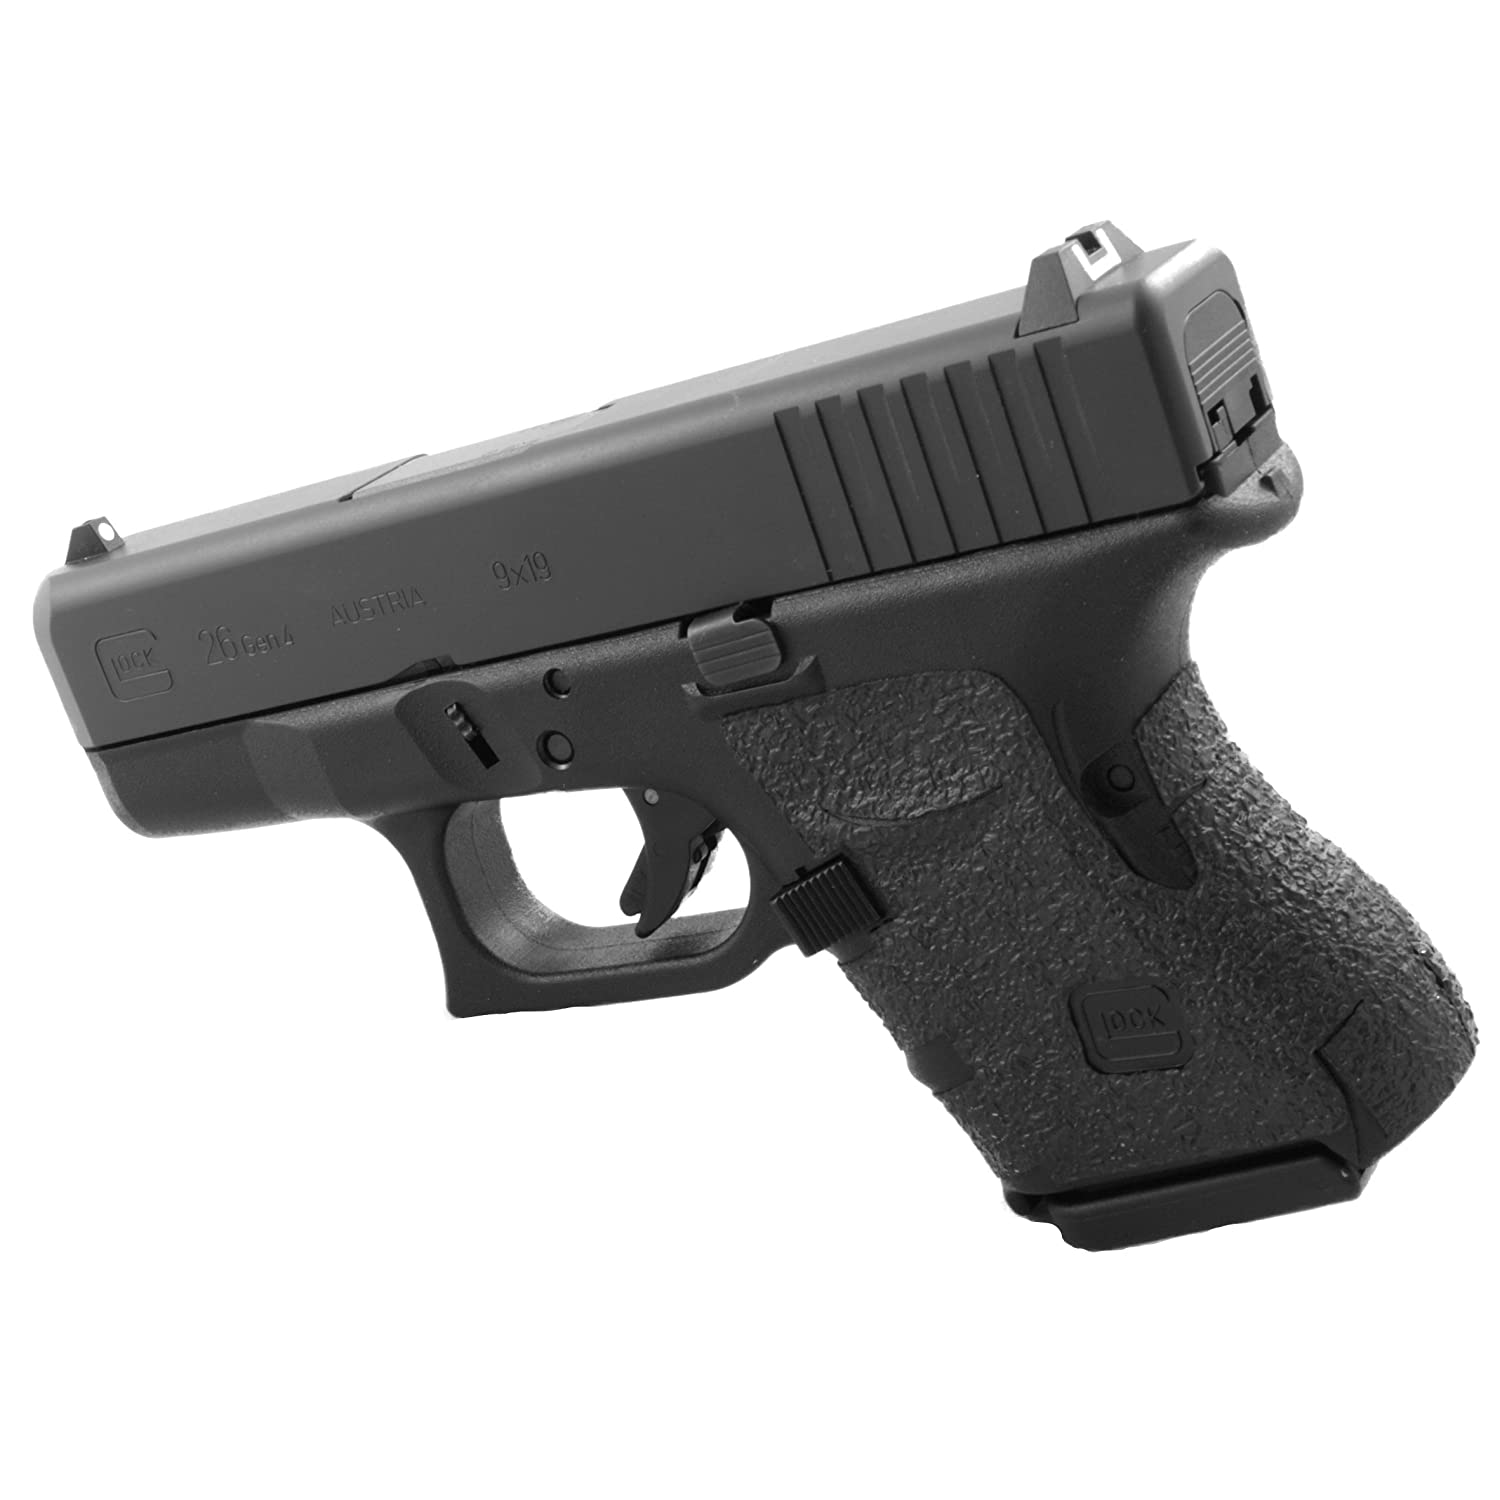 Amazon.com : TALON Grip for Glock 26, 27, 28, 33, 39 (Pre Gen 4 ...